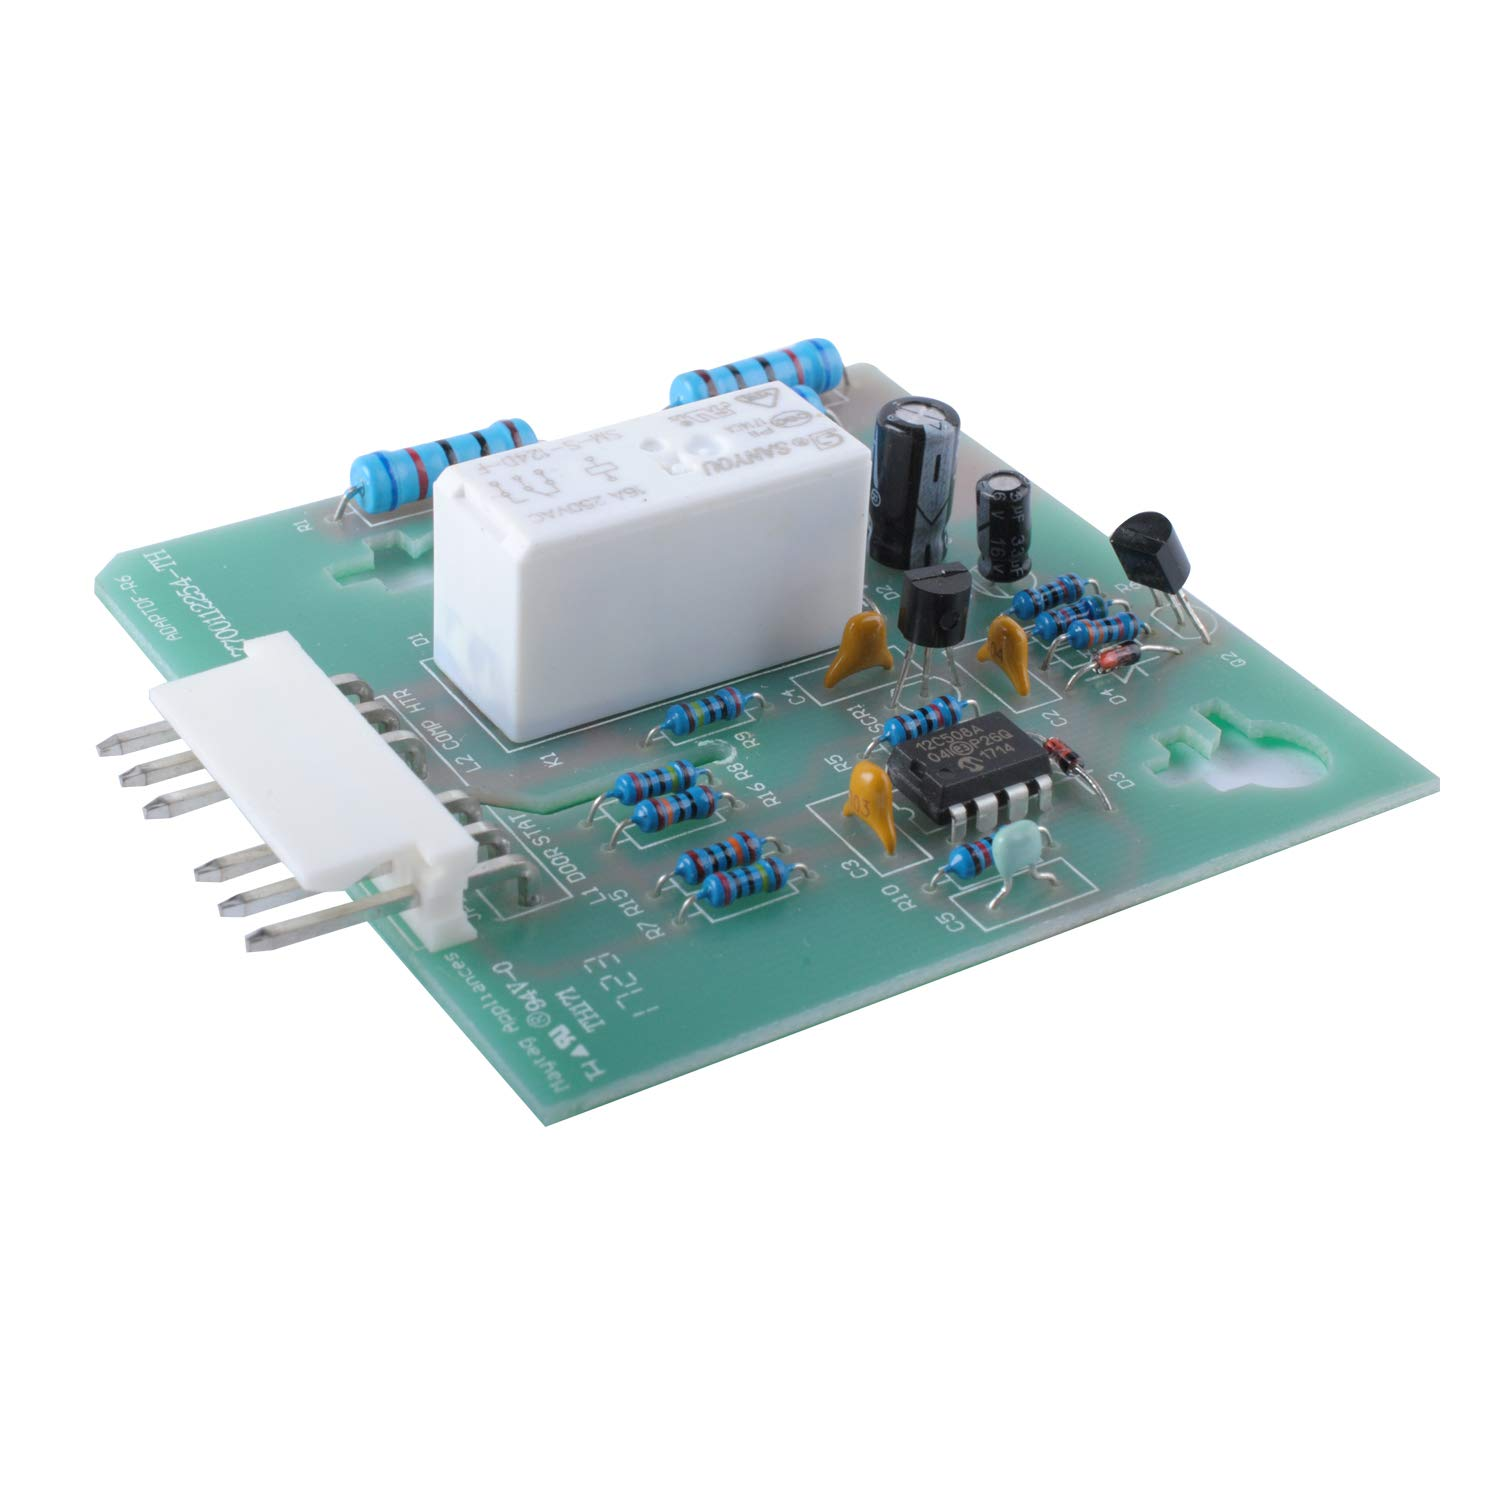 Wadoy 61005988 Adaptive Defrost Control Board for Whirlpool Maytag - Replaces 67003349, 61003990, 61002983, 12002104, ADC5988 Refrigerator Defrost Control Board Timer